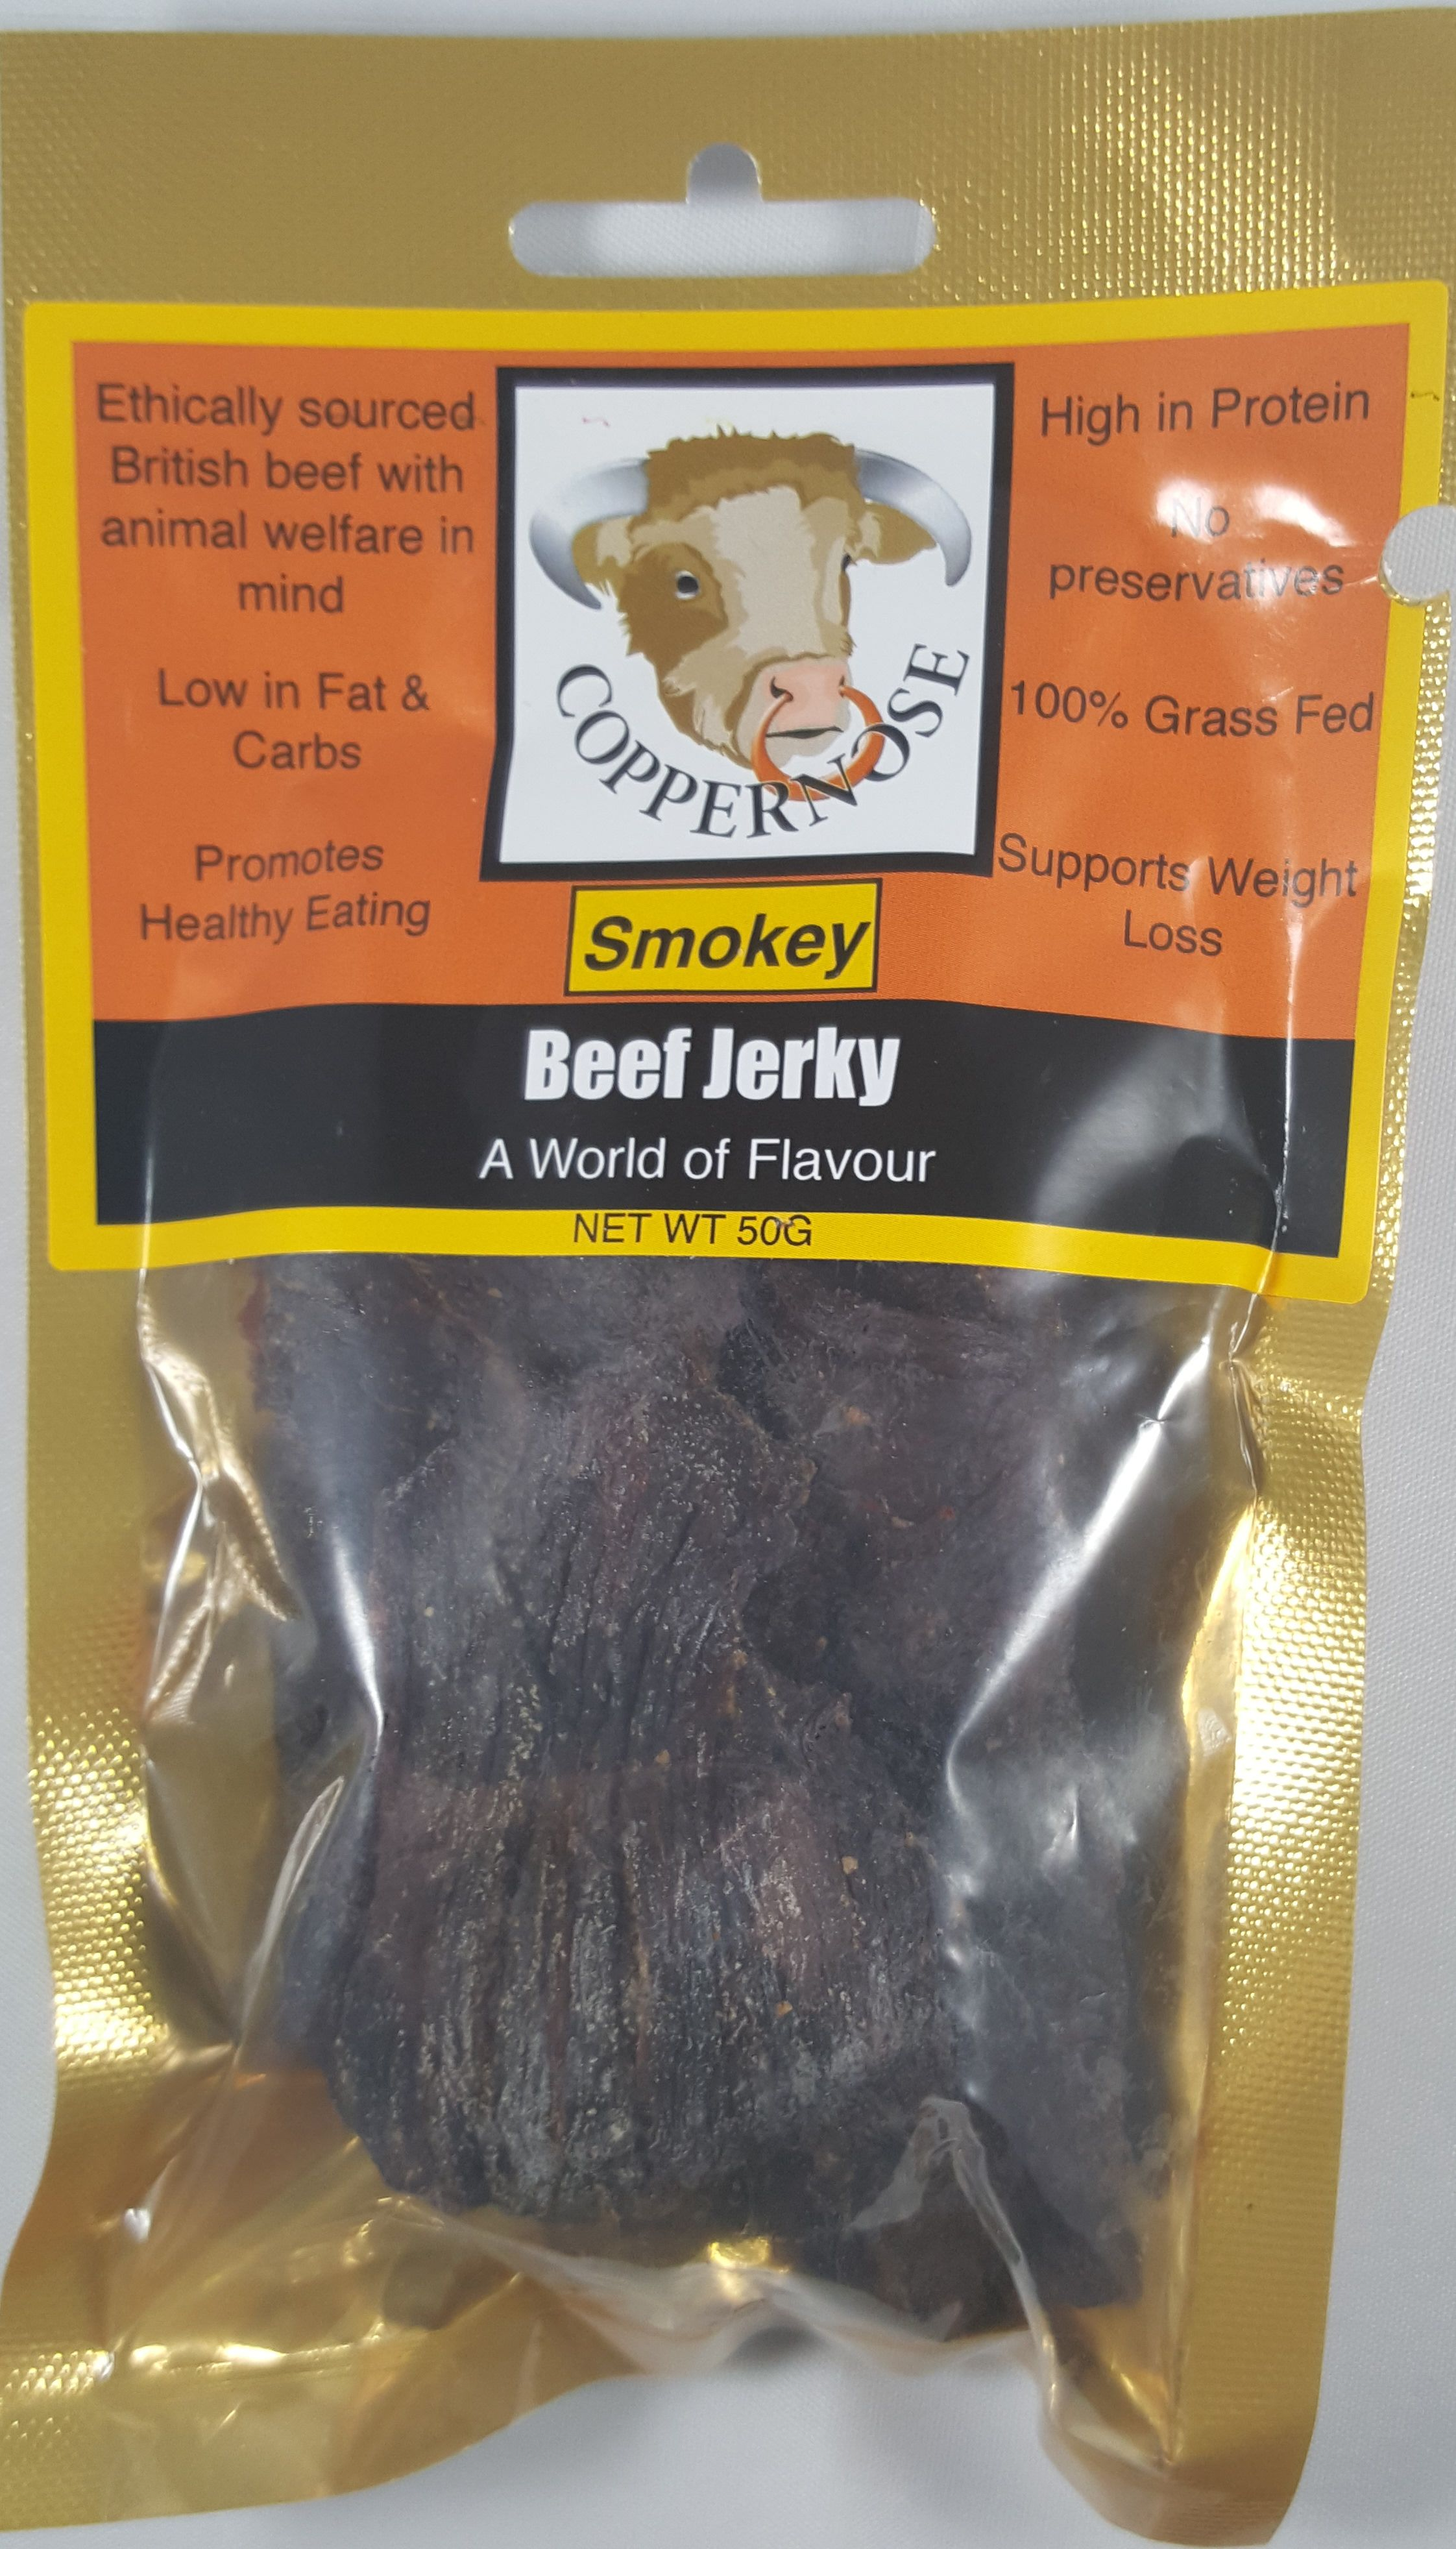 Coppernose Smokey 100 Grass Fed Beef Jerky Review Http Jerkyingredients Com 2016 09 10 Coppernose Smokey 1 Beef Jerky Grass Fed Beef Grass Fed Beef Jerky